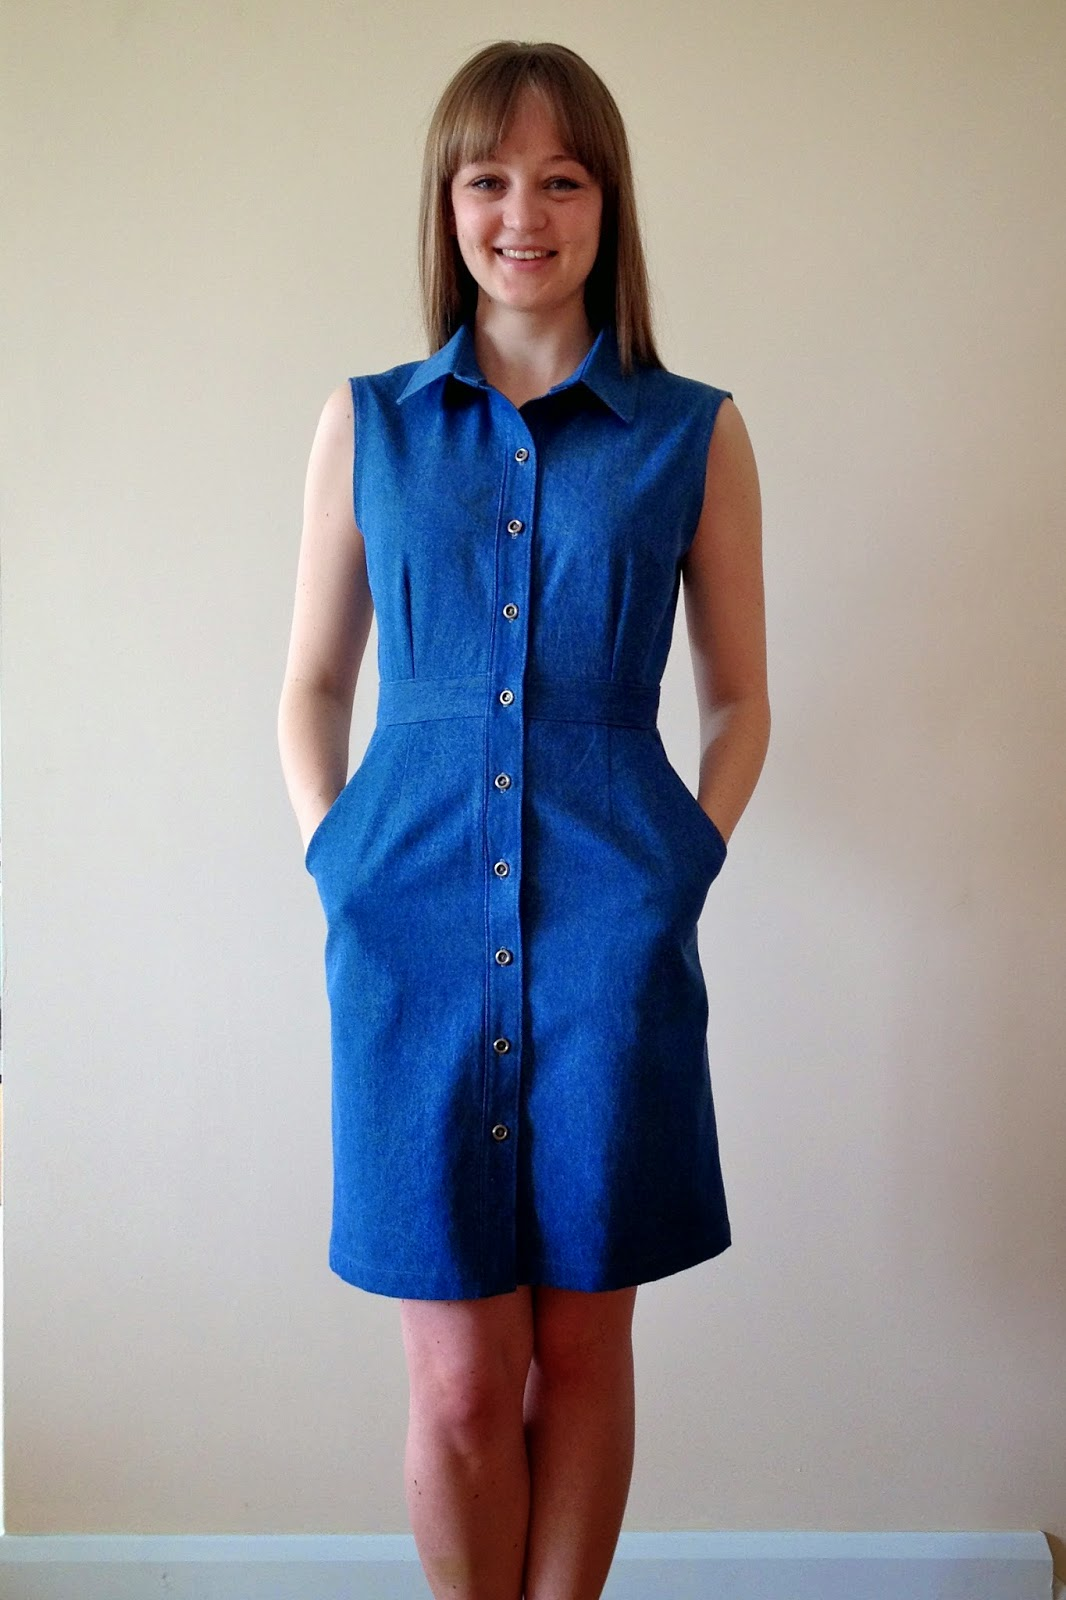 Shirtdress patterns and inspiration. Plus, 8 shirtdress sewing tips to help you sew like a pro. On the McCall Pattern Company blog. Buy the Long Sleeve Denim Shirt Dress from Marks and Spencer's range. Find this Pin and more on Shirtdress Patterns by McCall's & Simplicity Patterns. Shirtdress sewing inspo. Use M by McCall's.